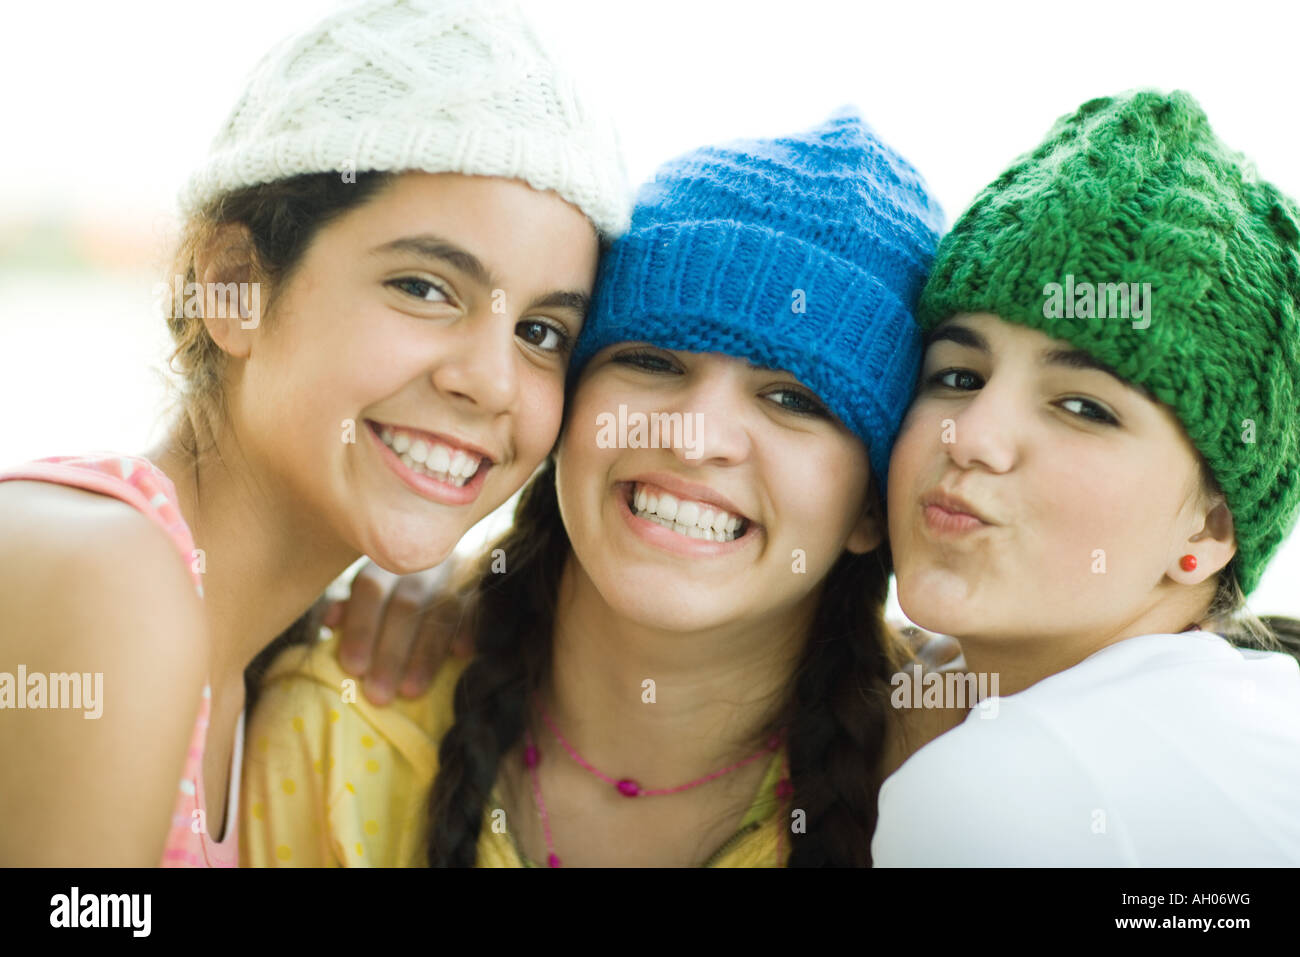 Young female friends wearing knit hats, smiling at camera - Stock Image